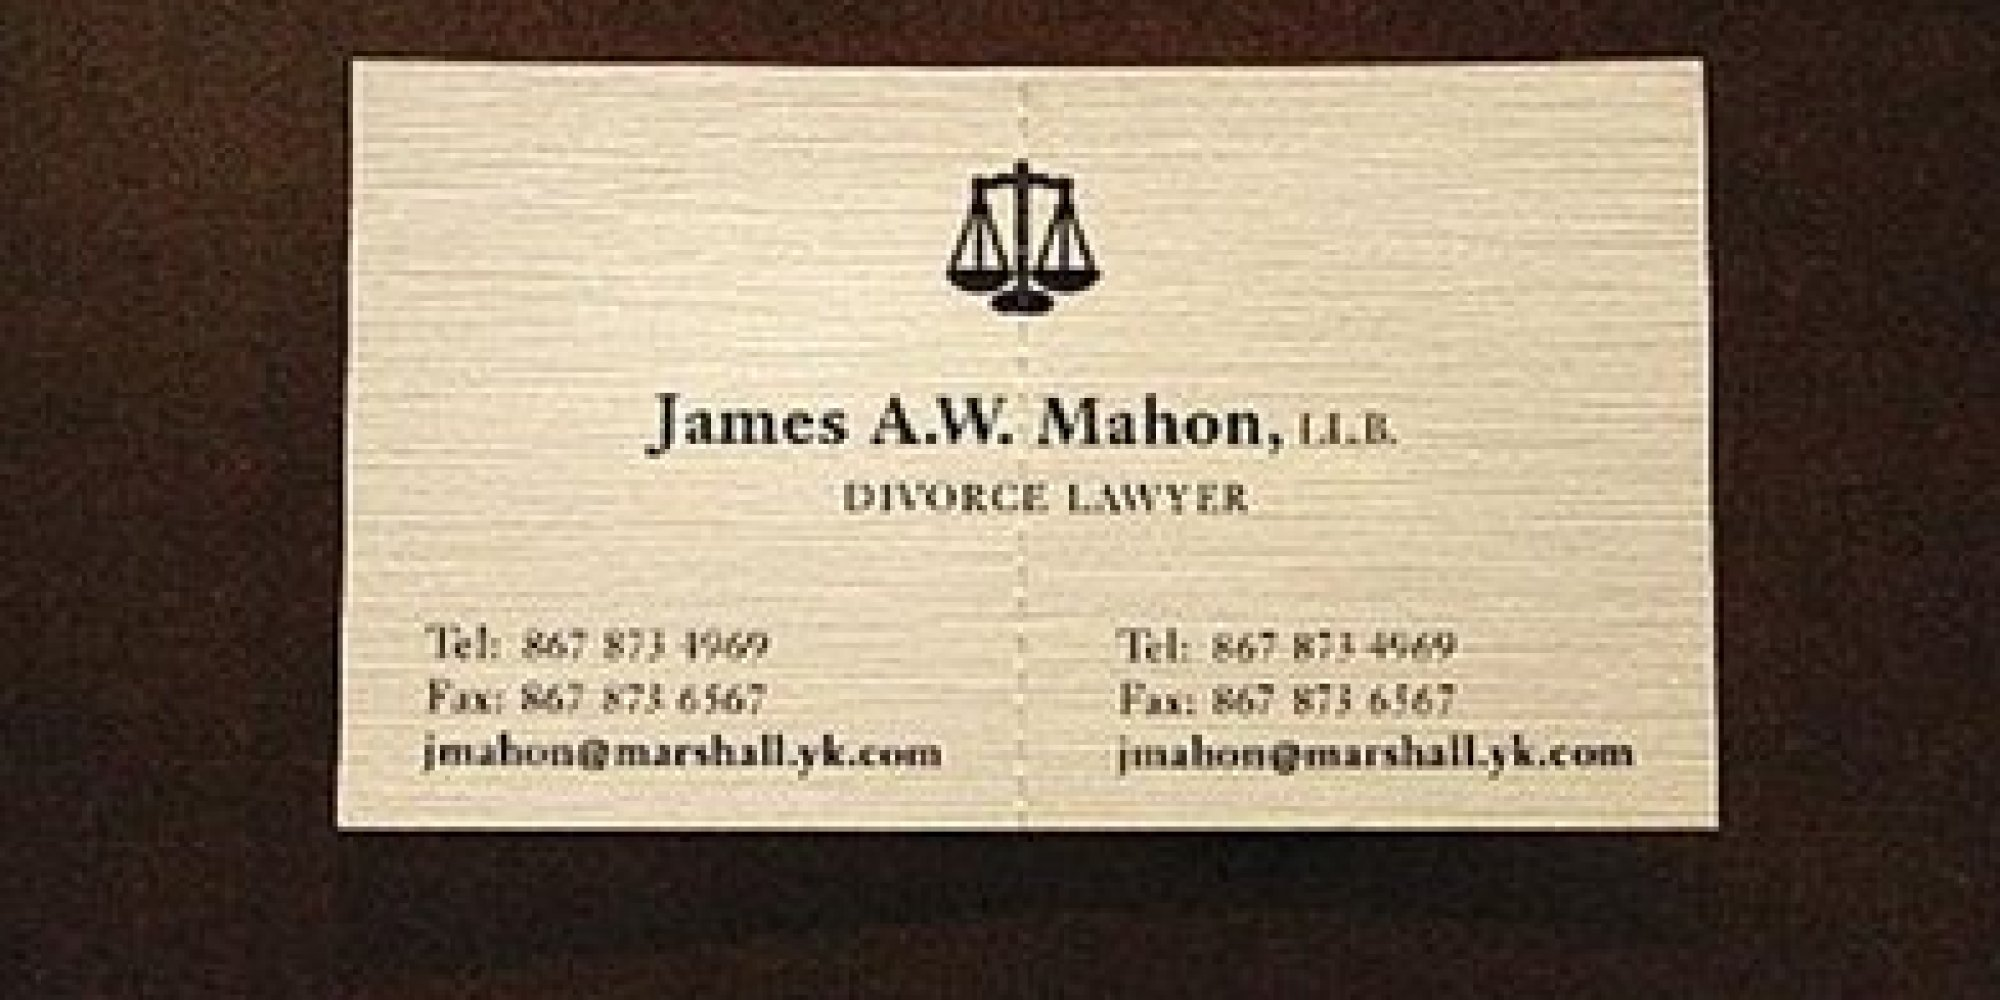 Divorce Attorney\'s Business Card Is Not What It Seems (PHOTO ...